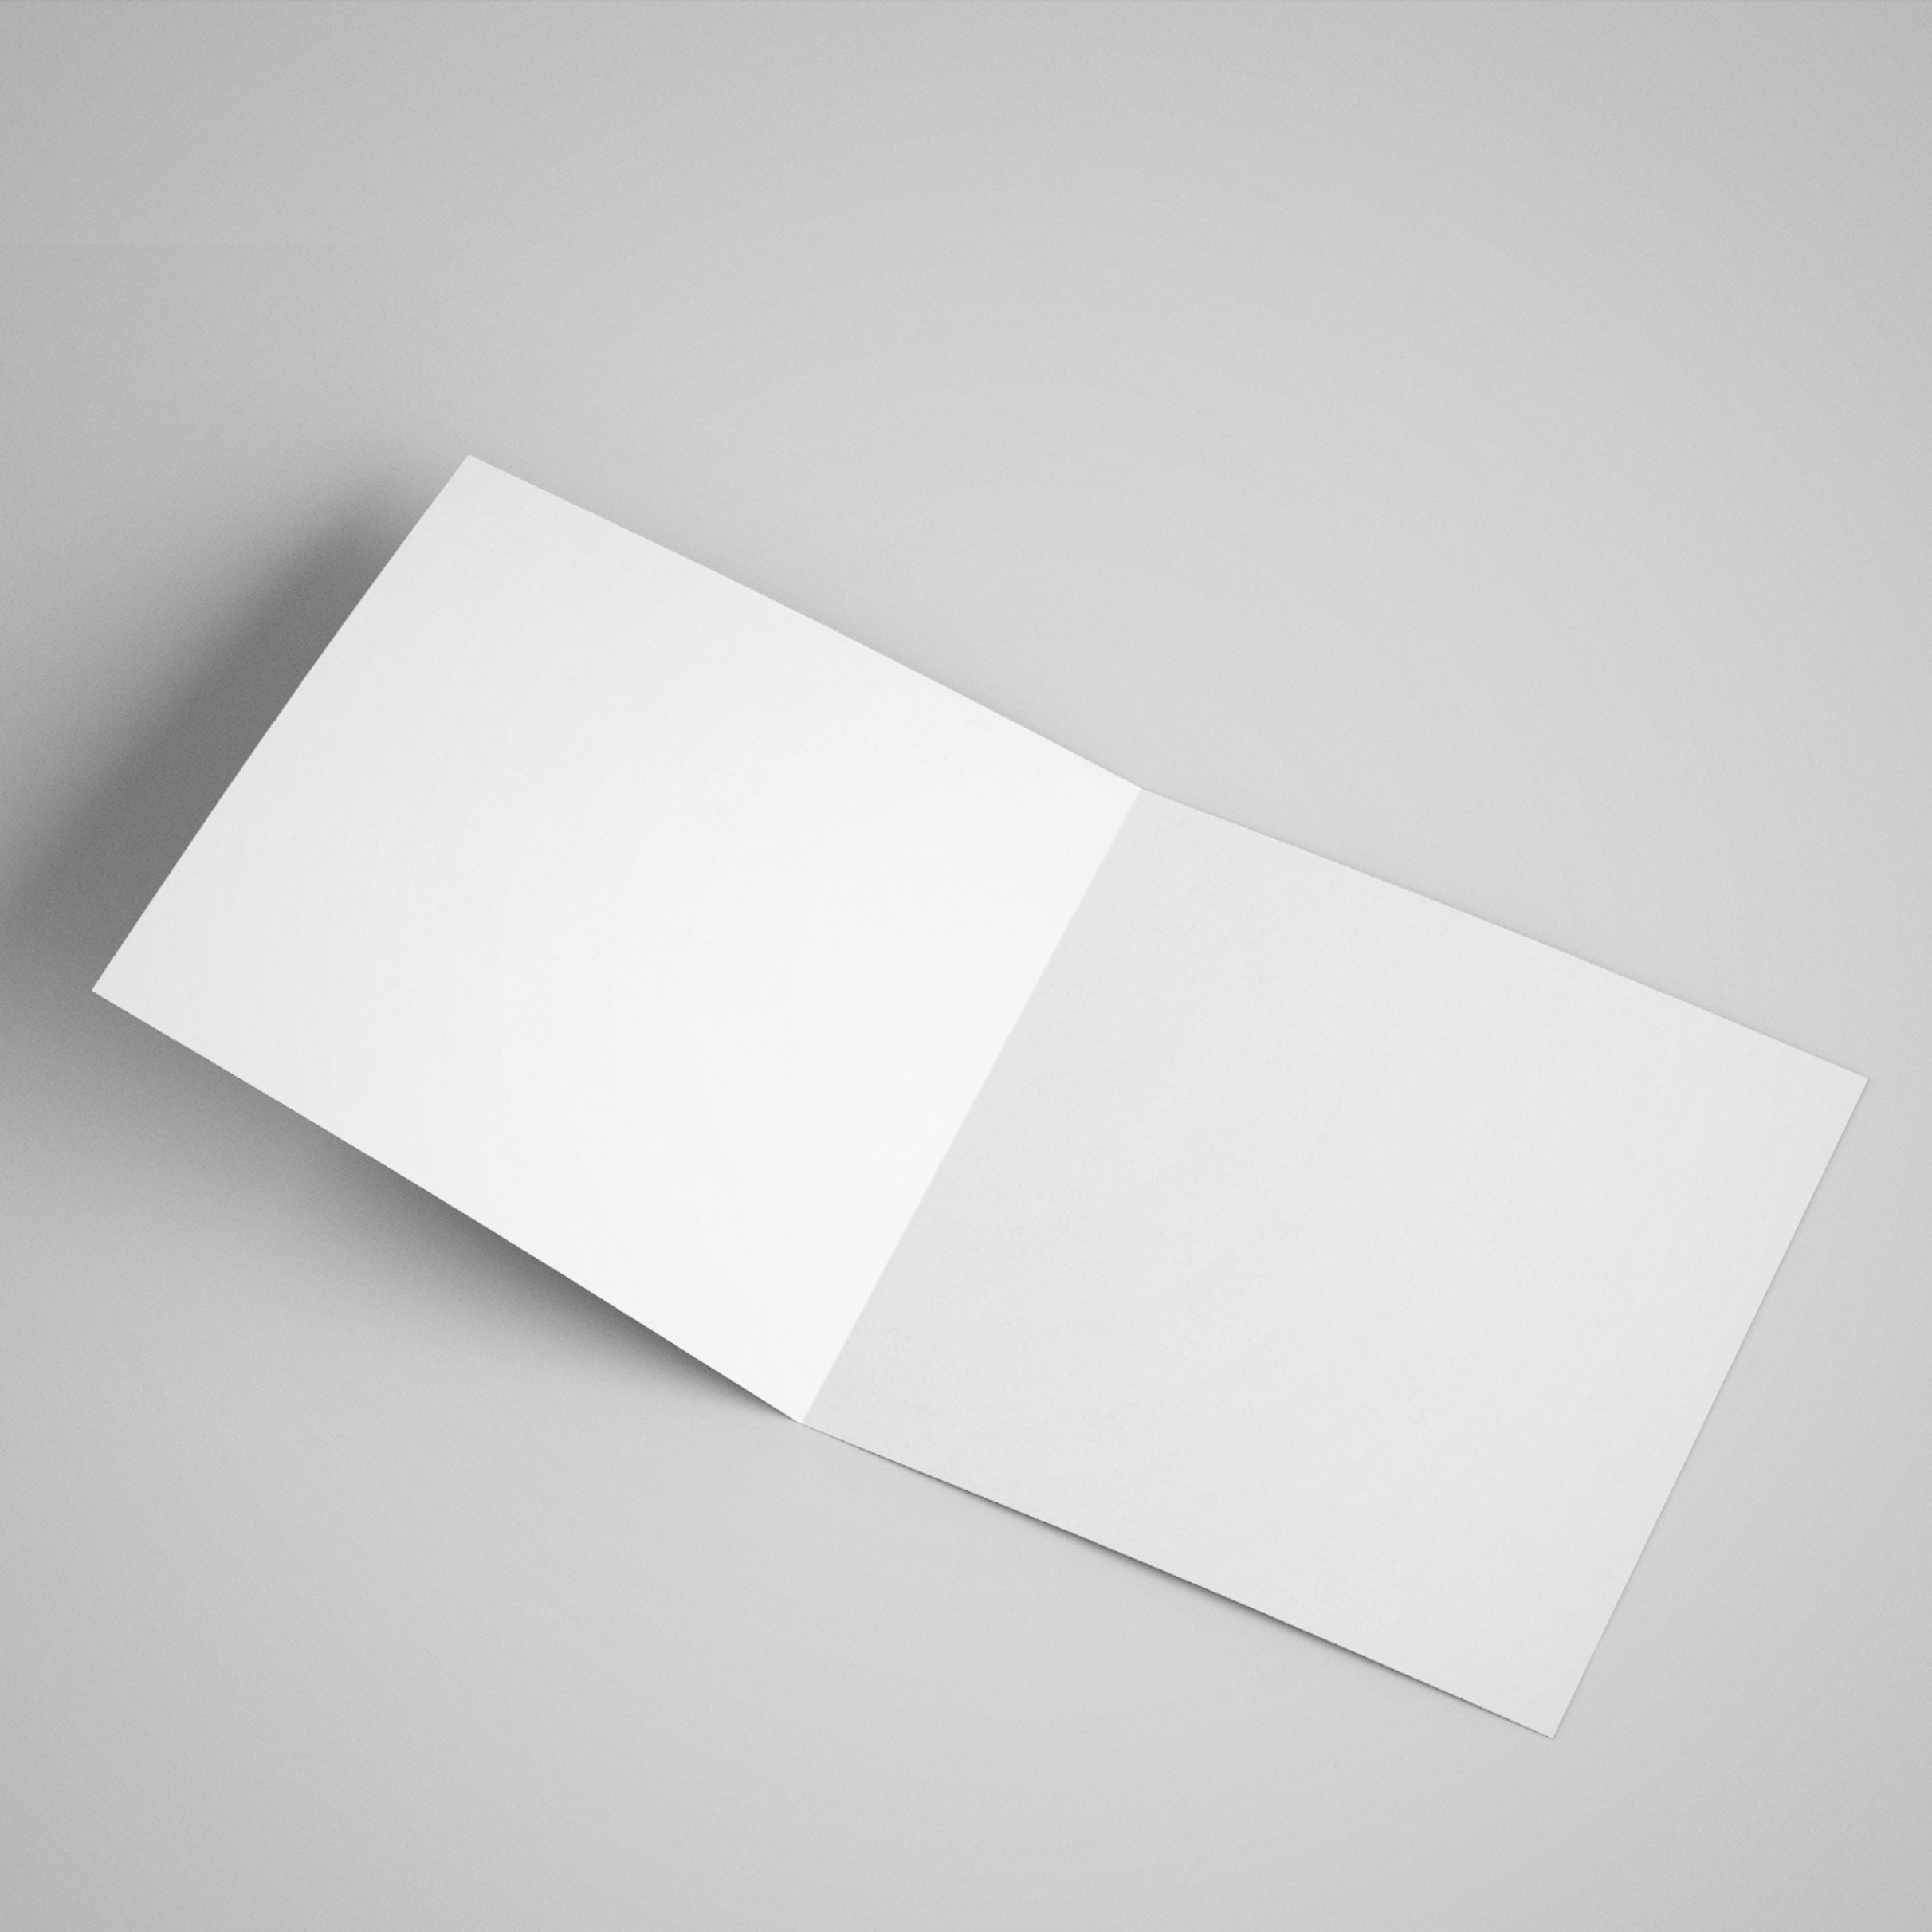 Open card showing that the inside of the card is completely blank